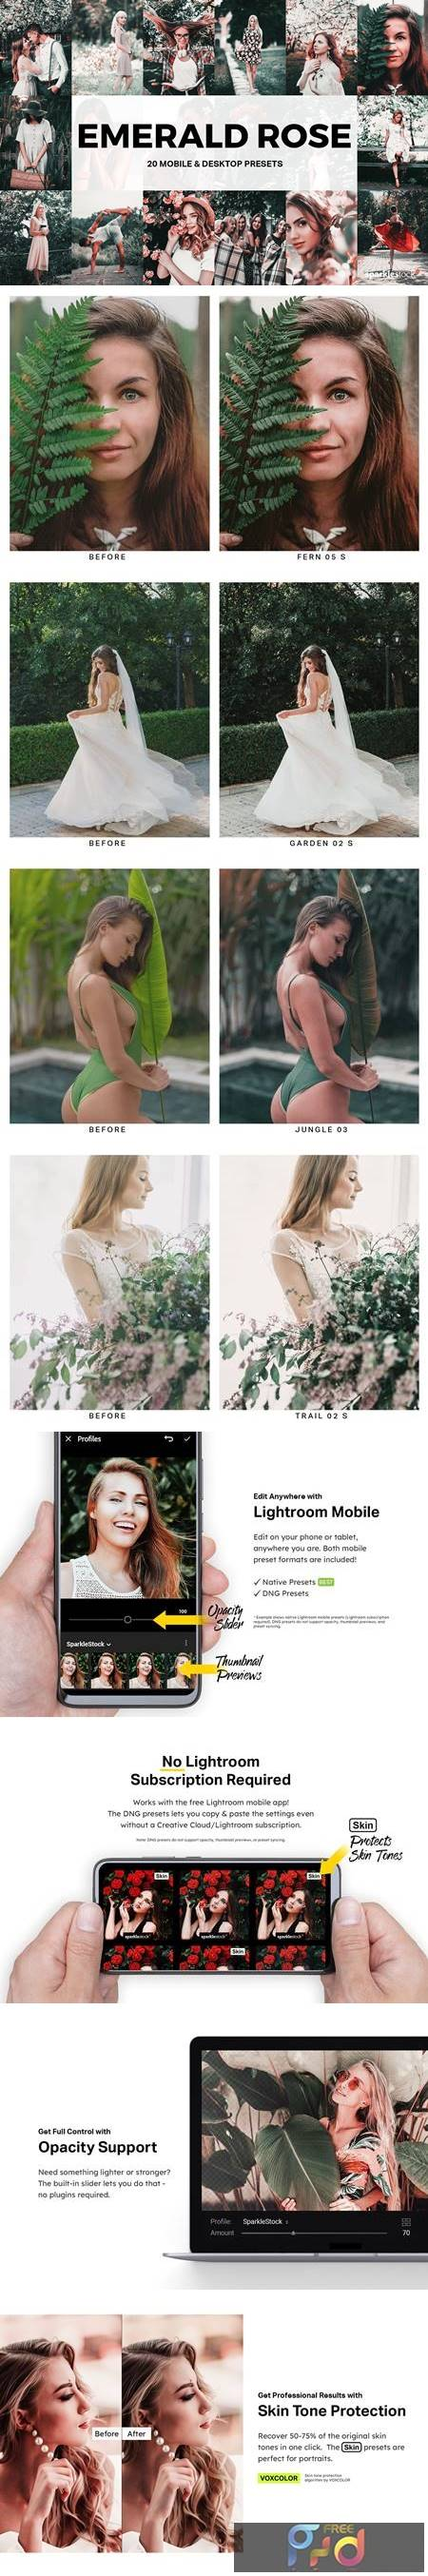 20 Emerald Rose Lightroom Presets and LUTs 5156398 1